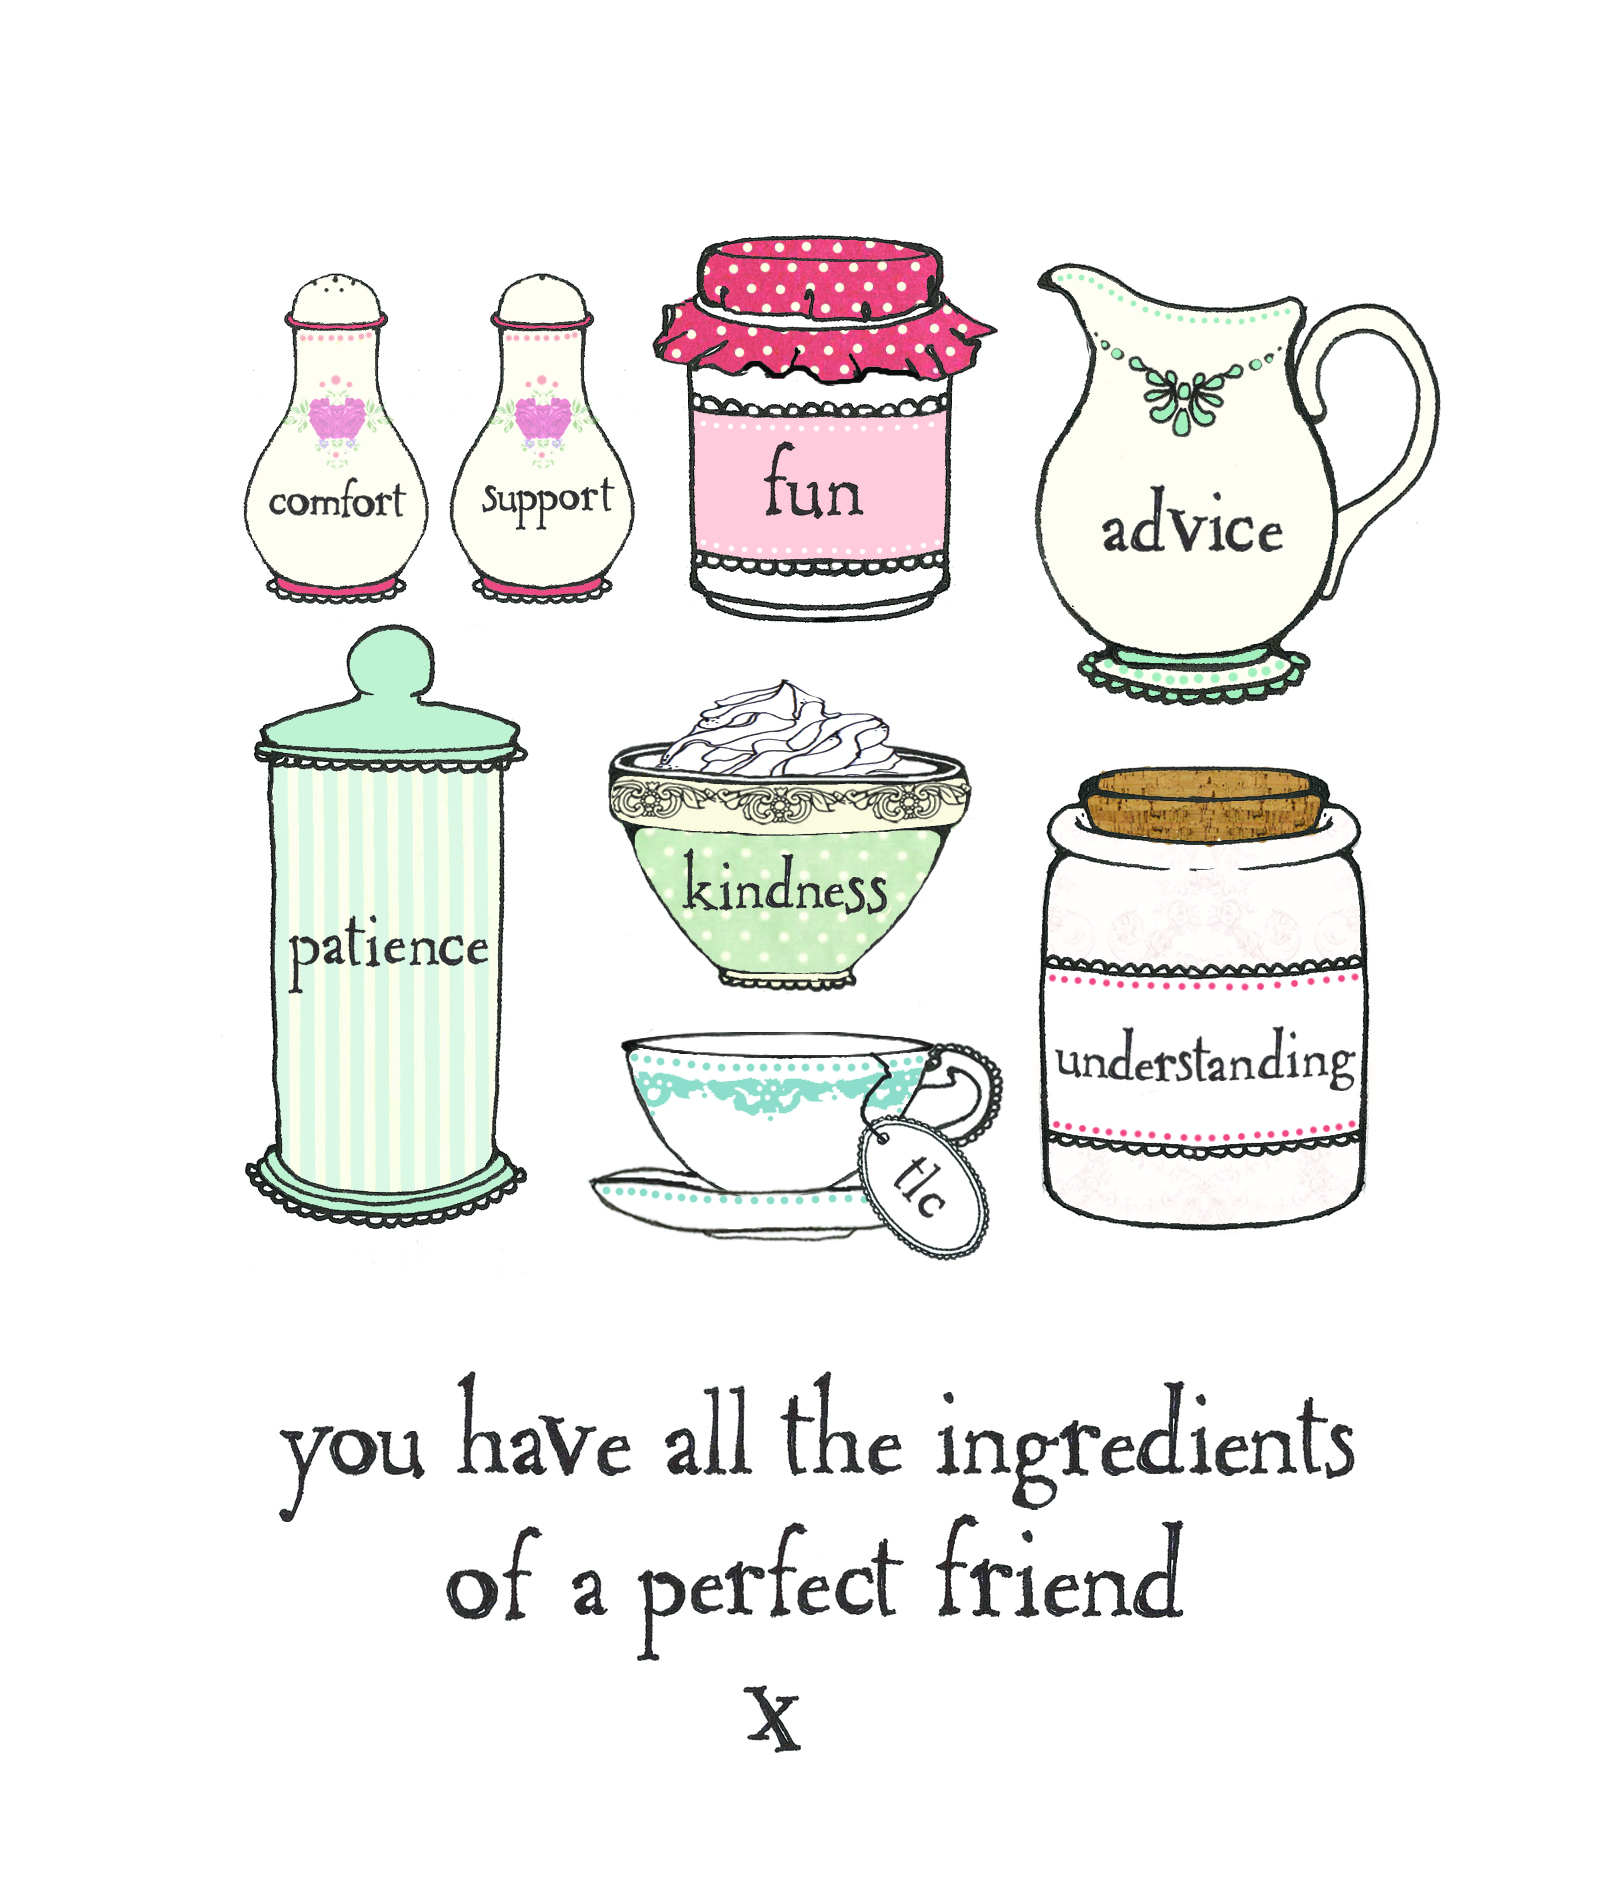 Bryony_Fripp_Illustrator_Perfect Friend Card.jpg